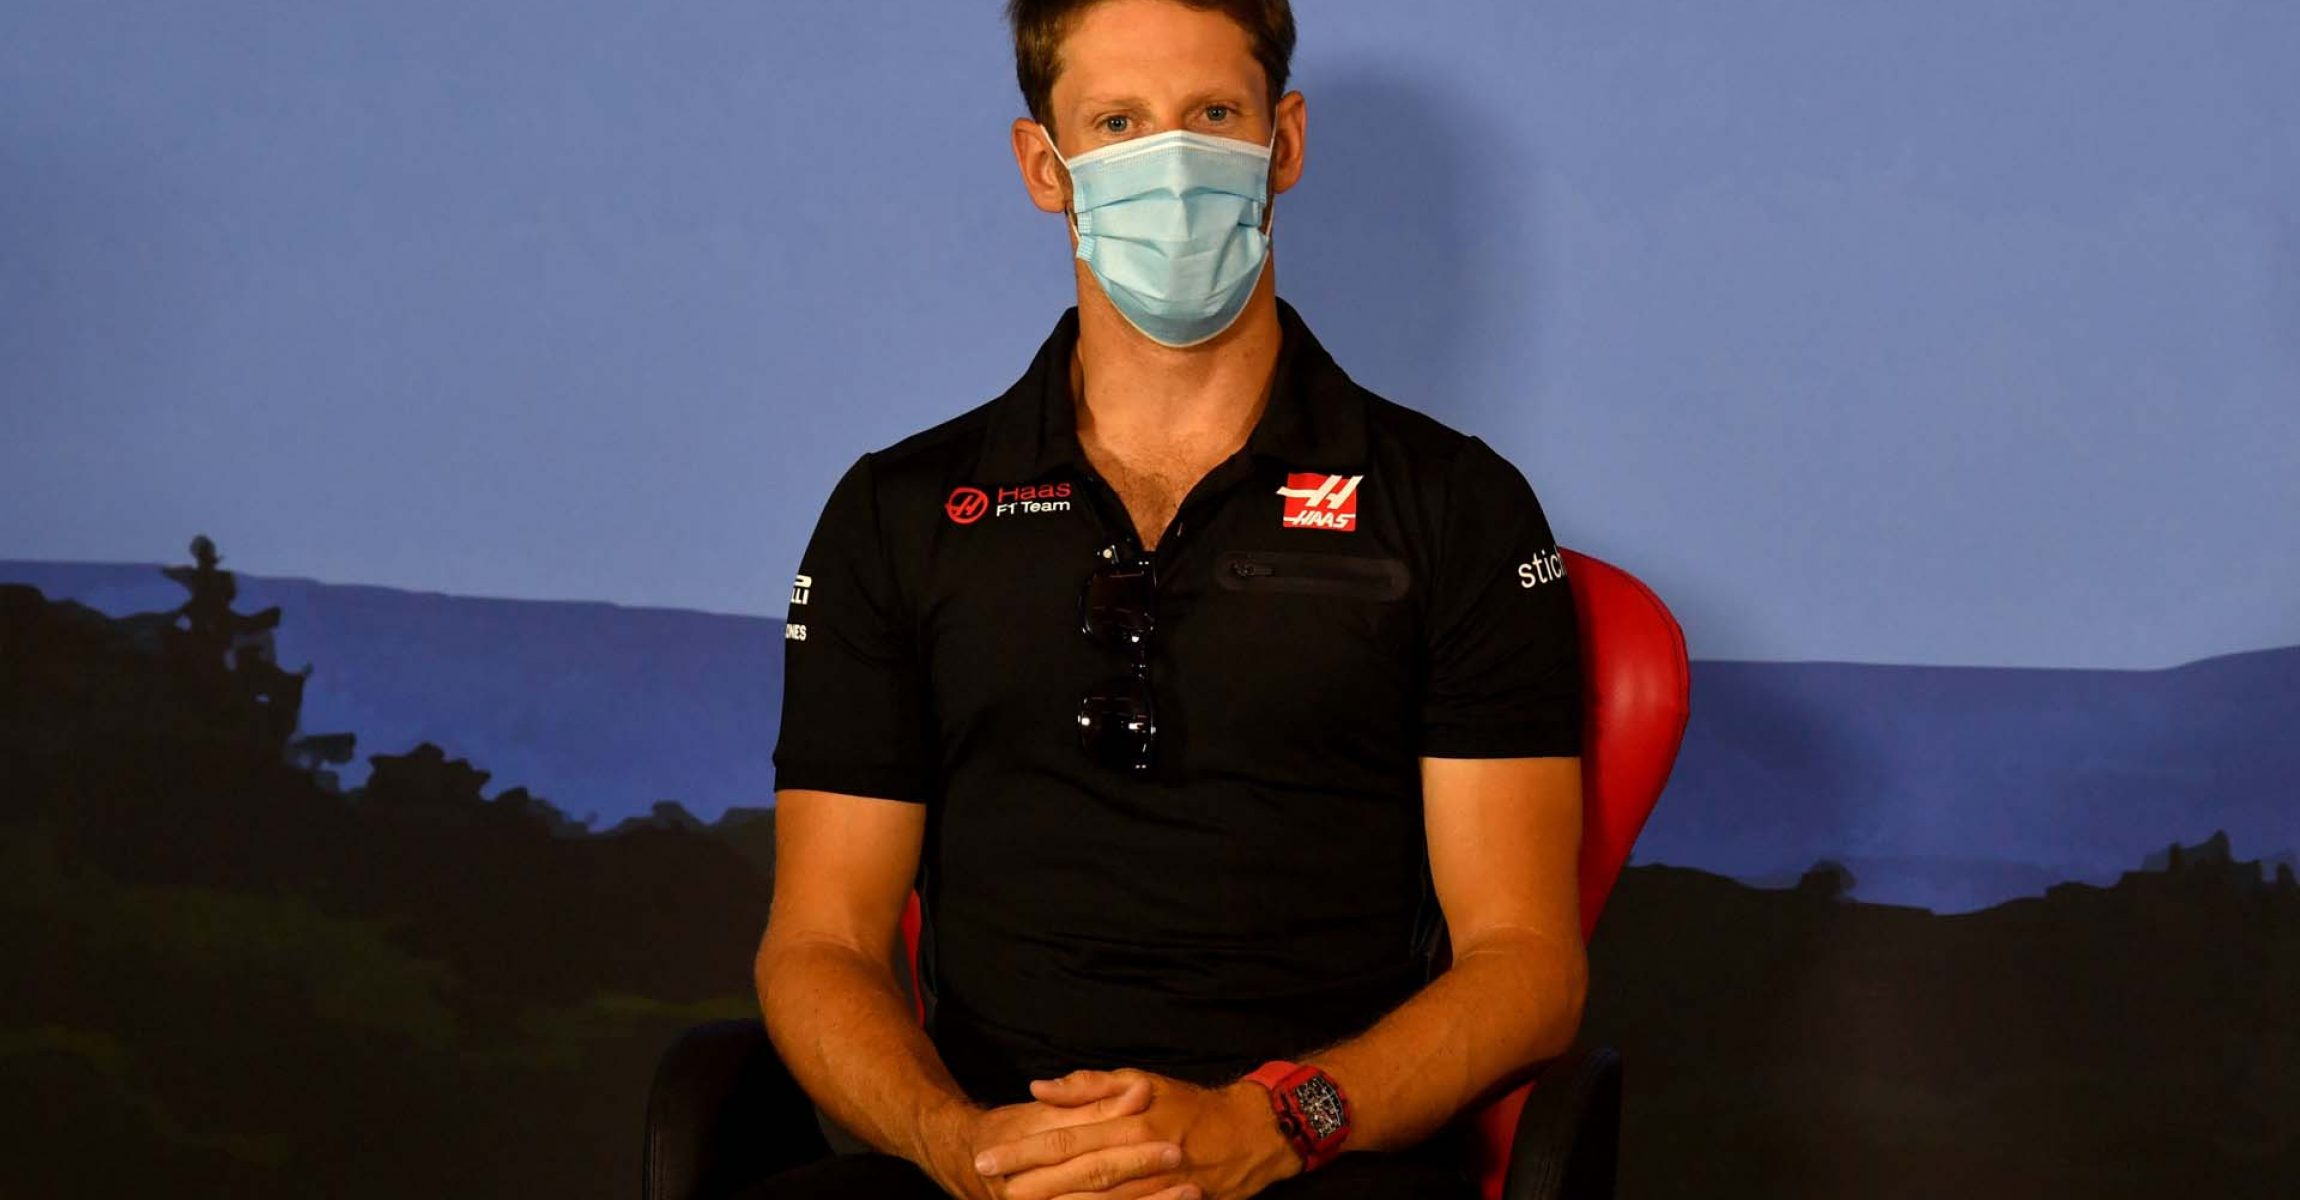 JULY 02: Romain Grosjean, Haas during the drivers press conference during the Austrian GP on Thursday July 02, 2020. (Photo by Mark Sutton / LAT Images)